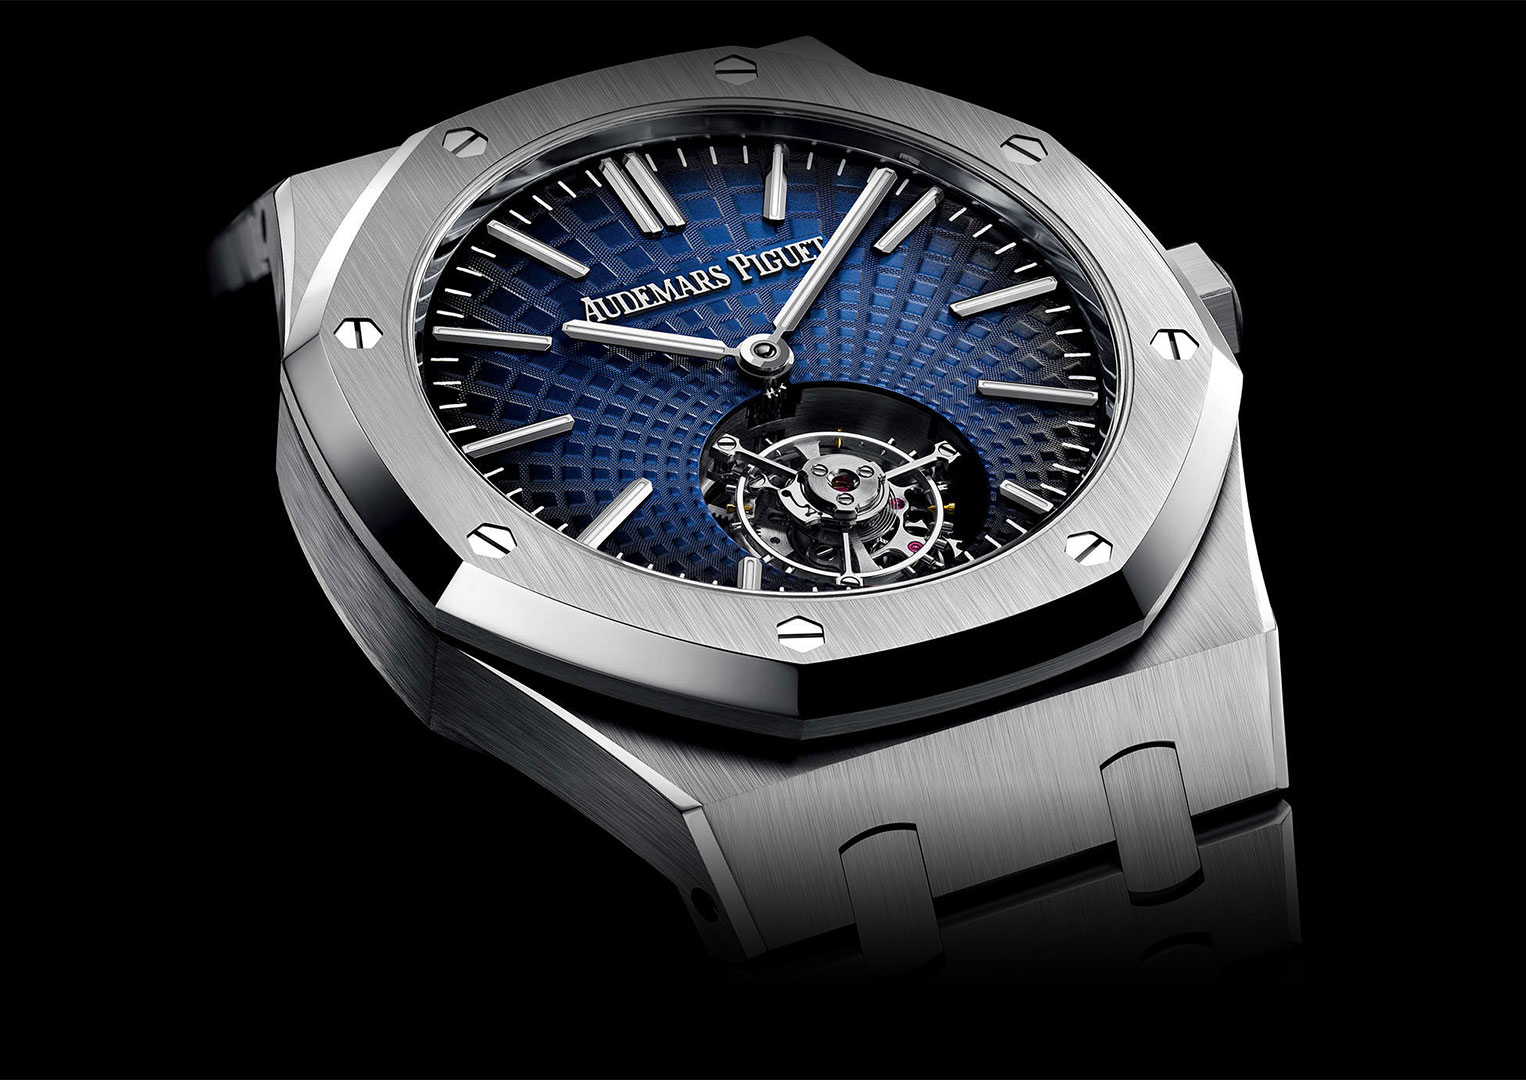 The Audemars Piguet Royal Oak was first introduced in 1972